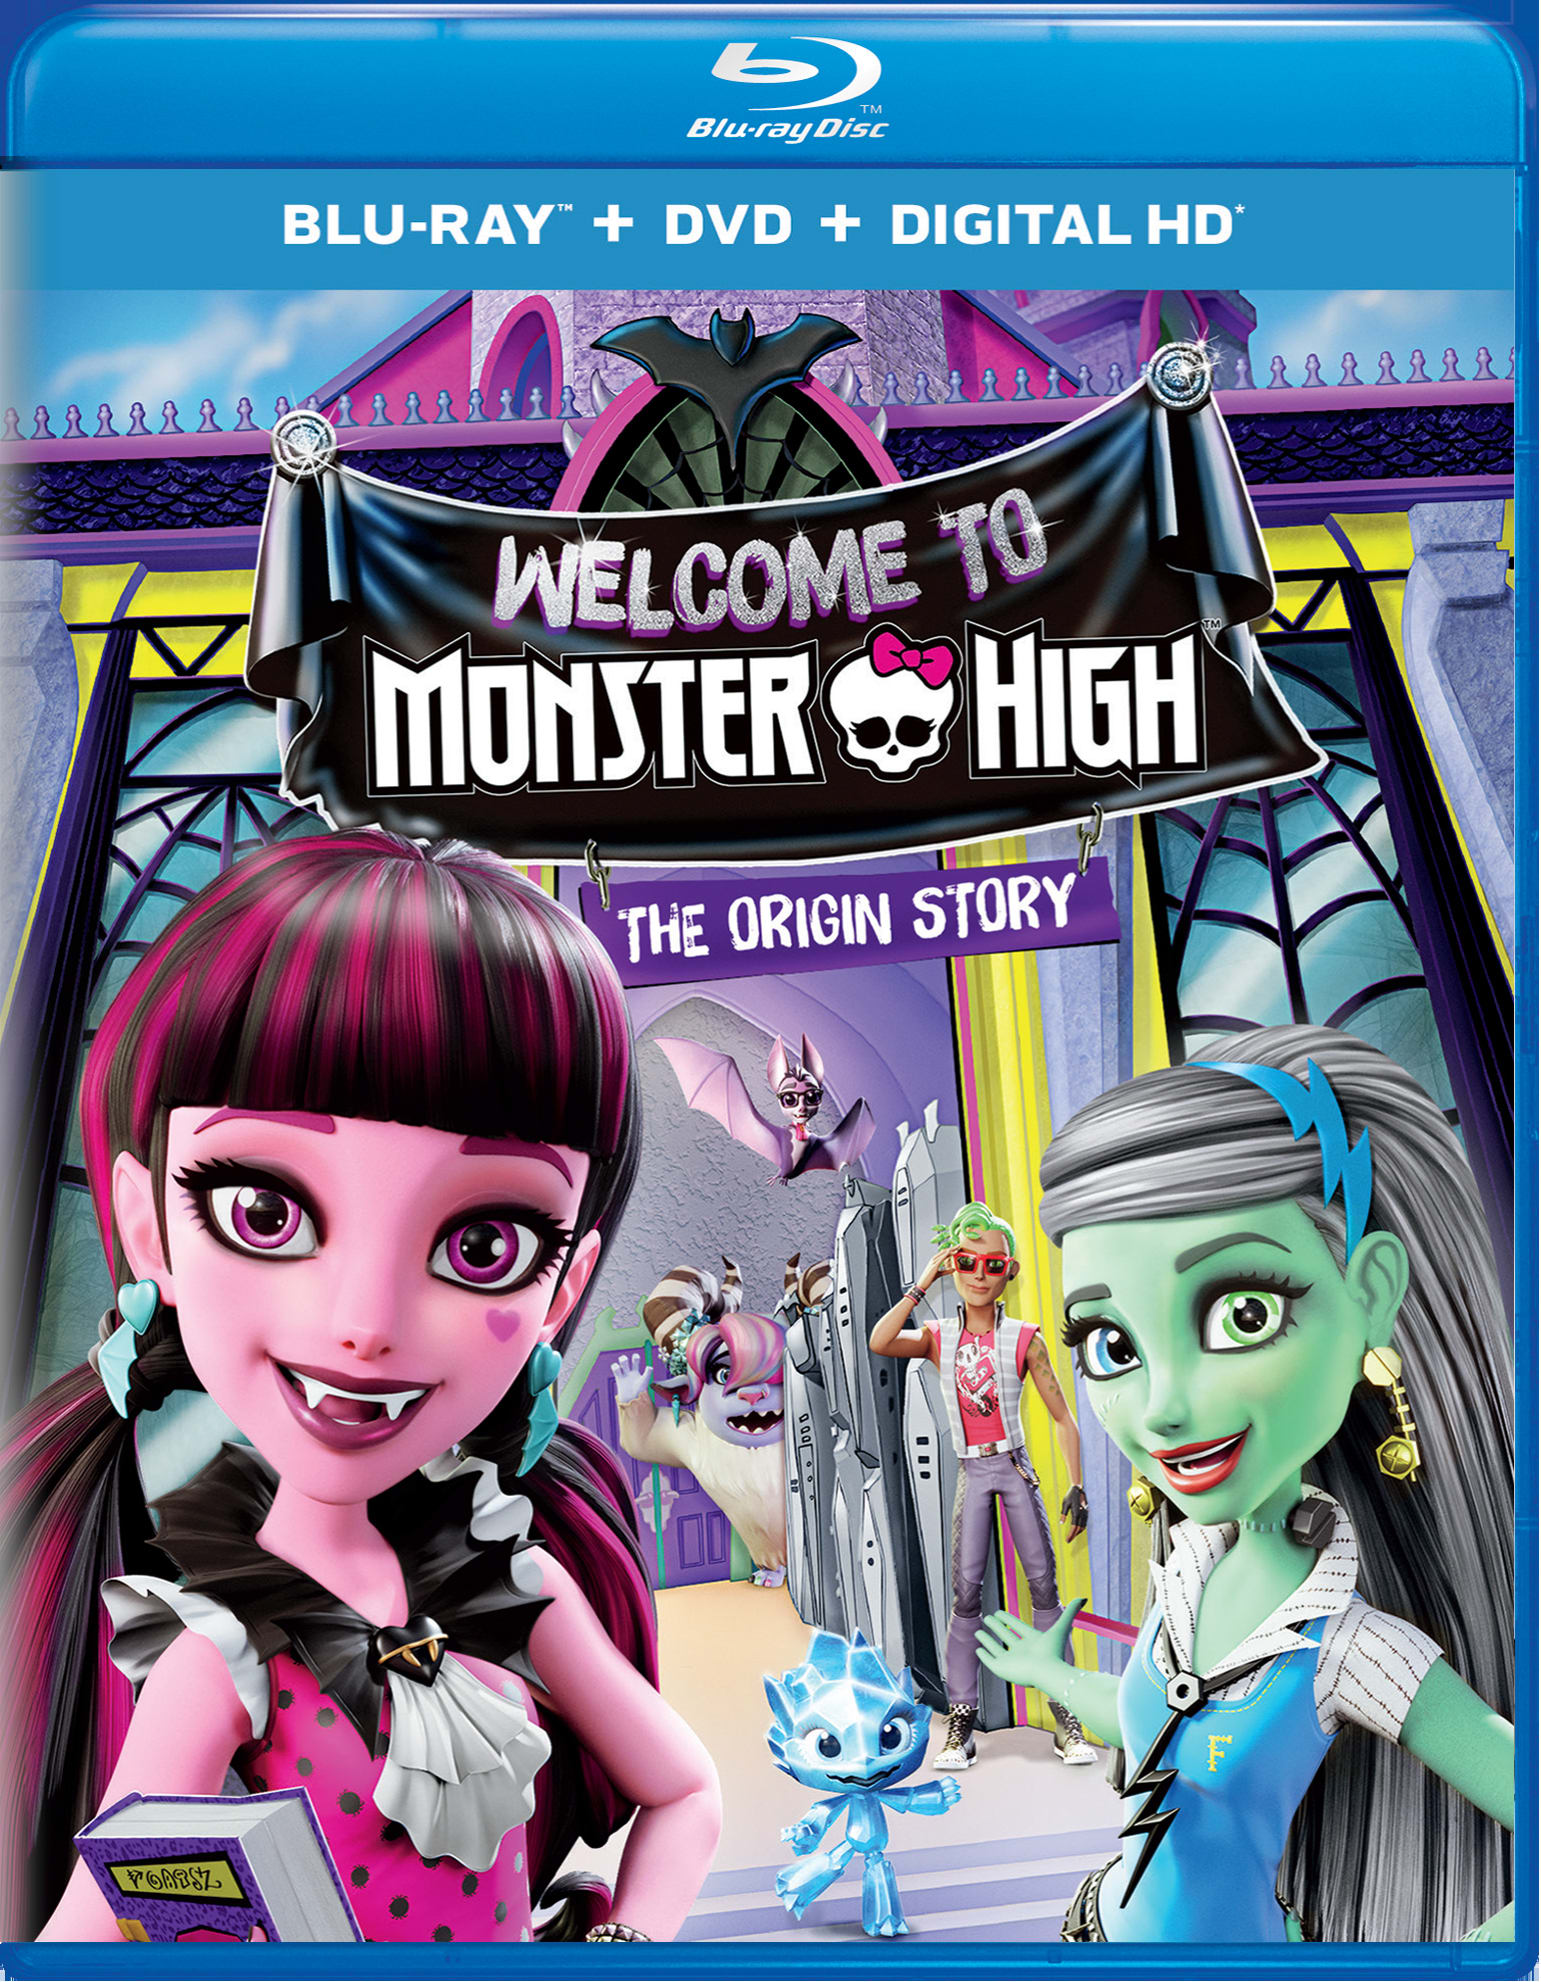 Monster High: Welcome to Monster High (DVD + Digital) [Blu-ray]